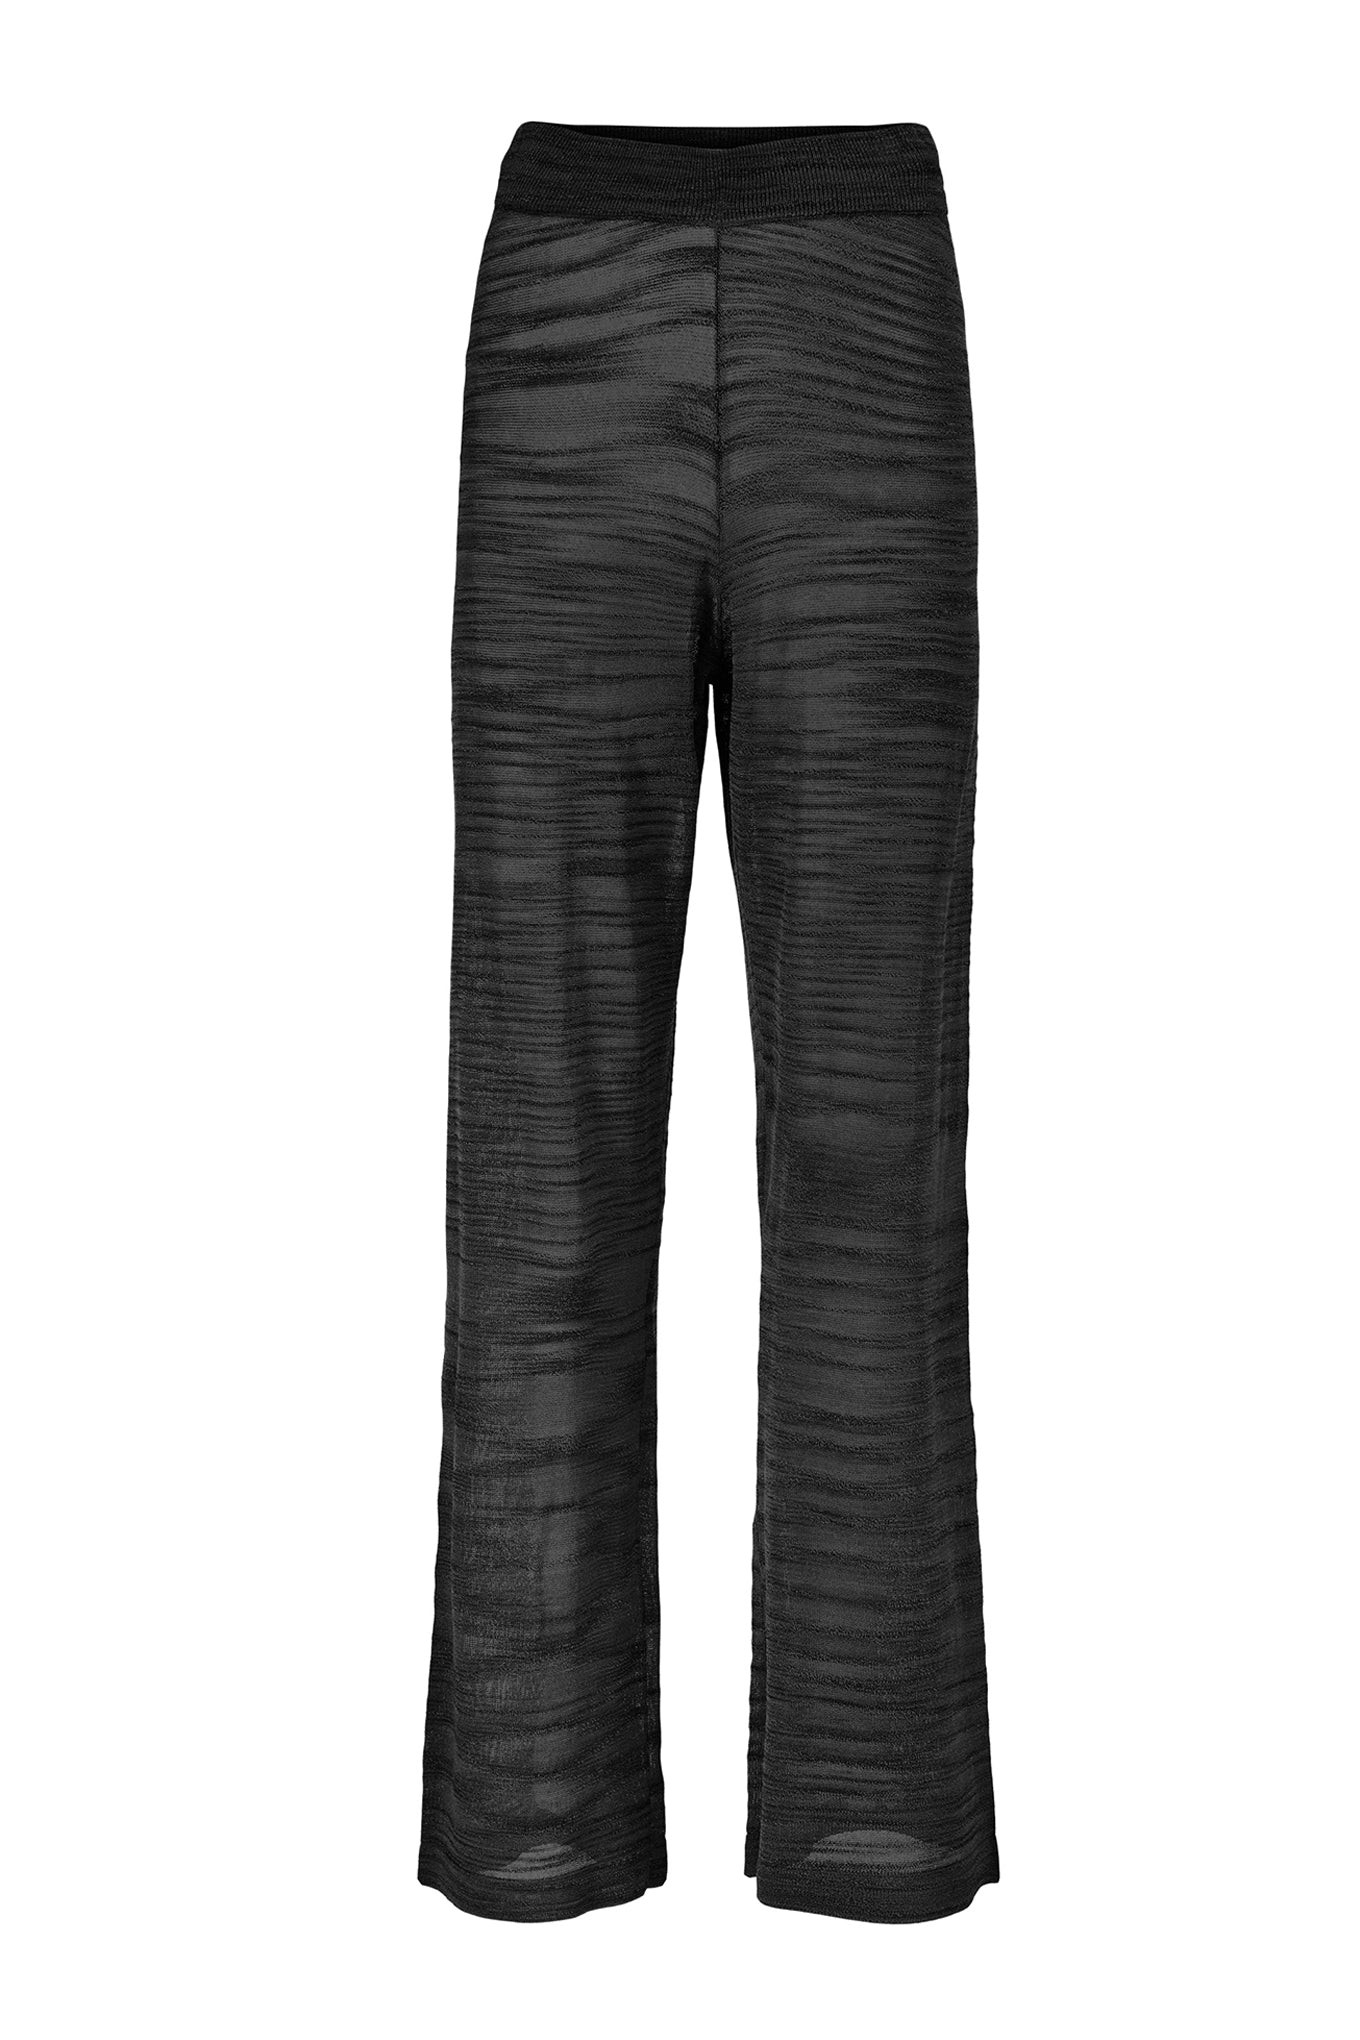 Sima Knit Pants - Black - Silk/Linen/Viscose